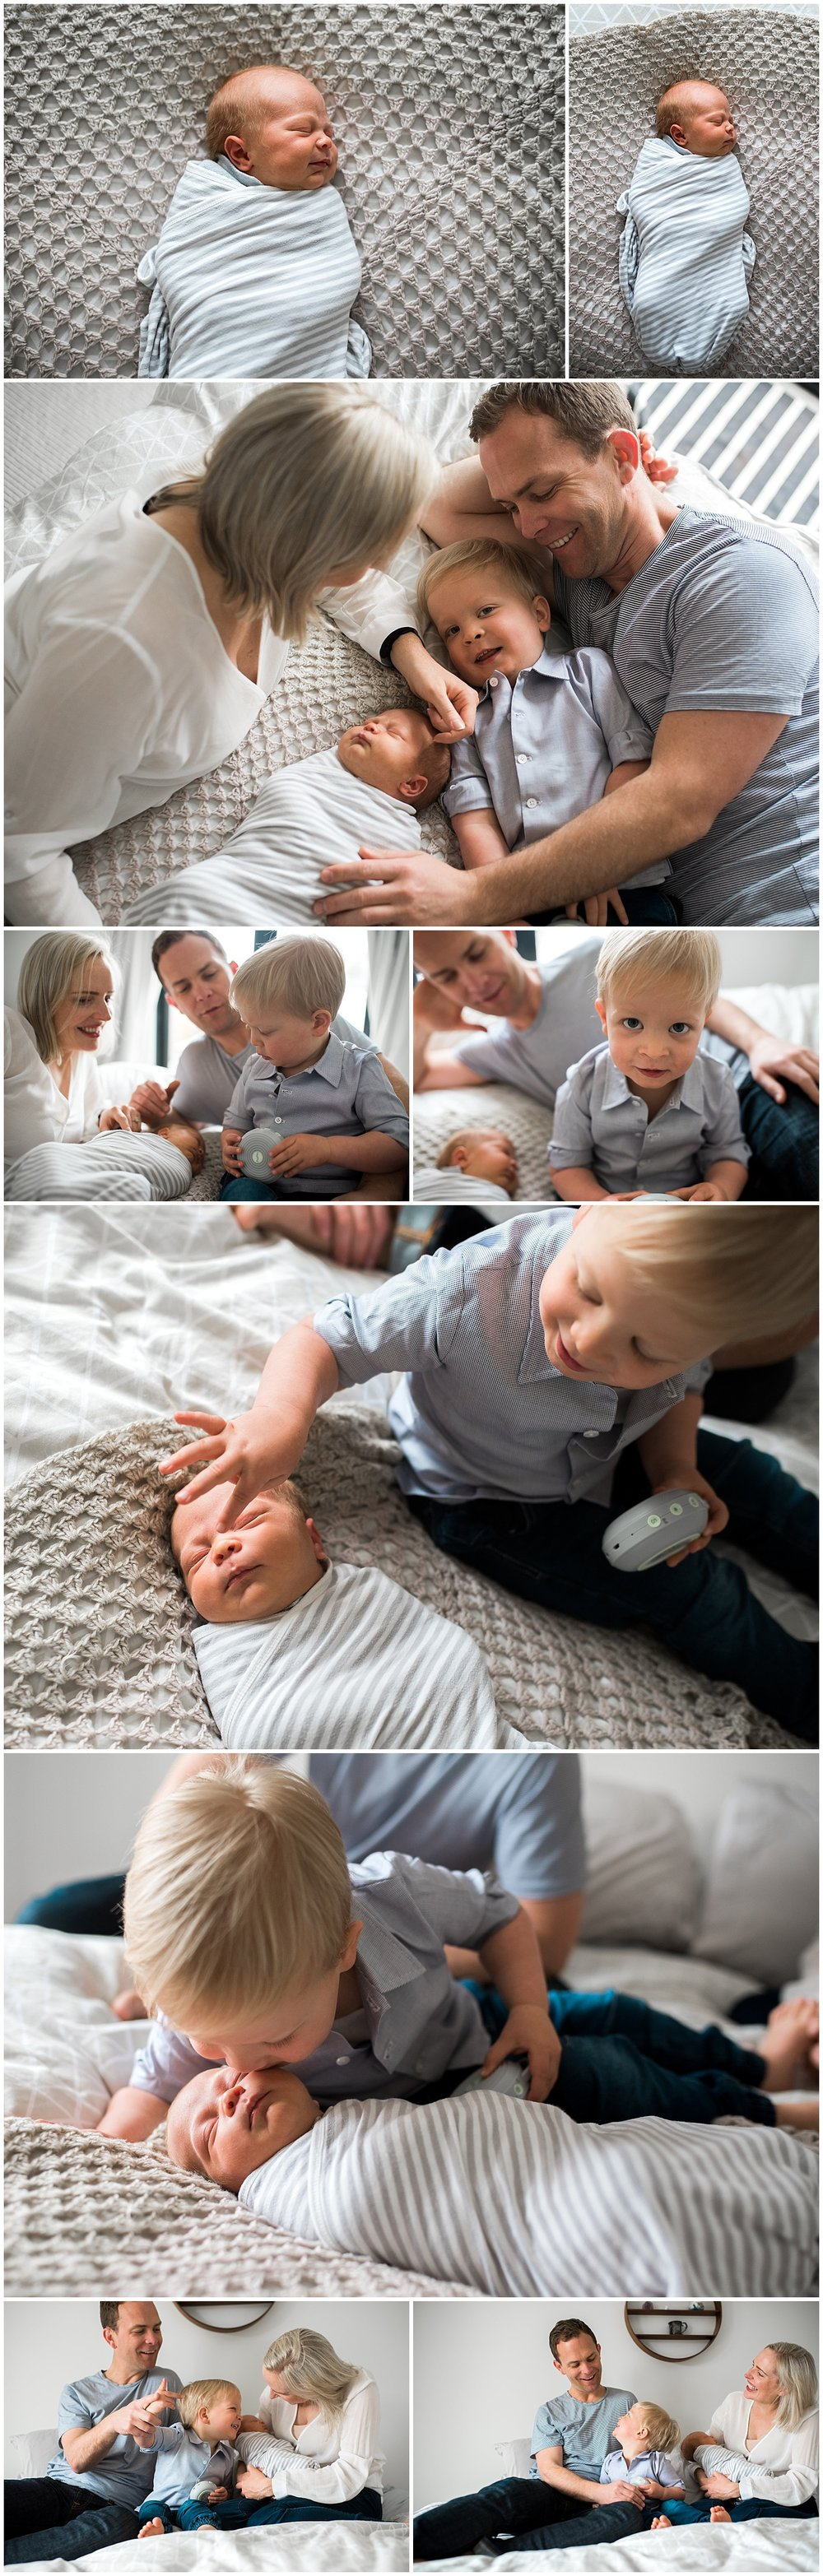 kensington newborn photographer